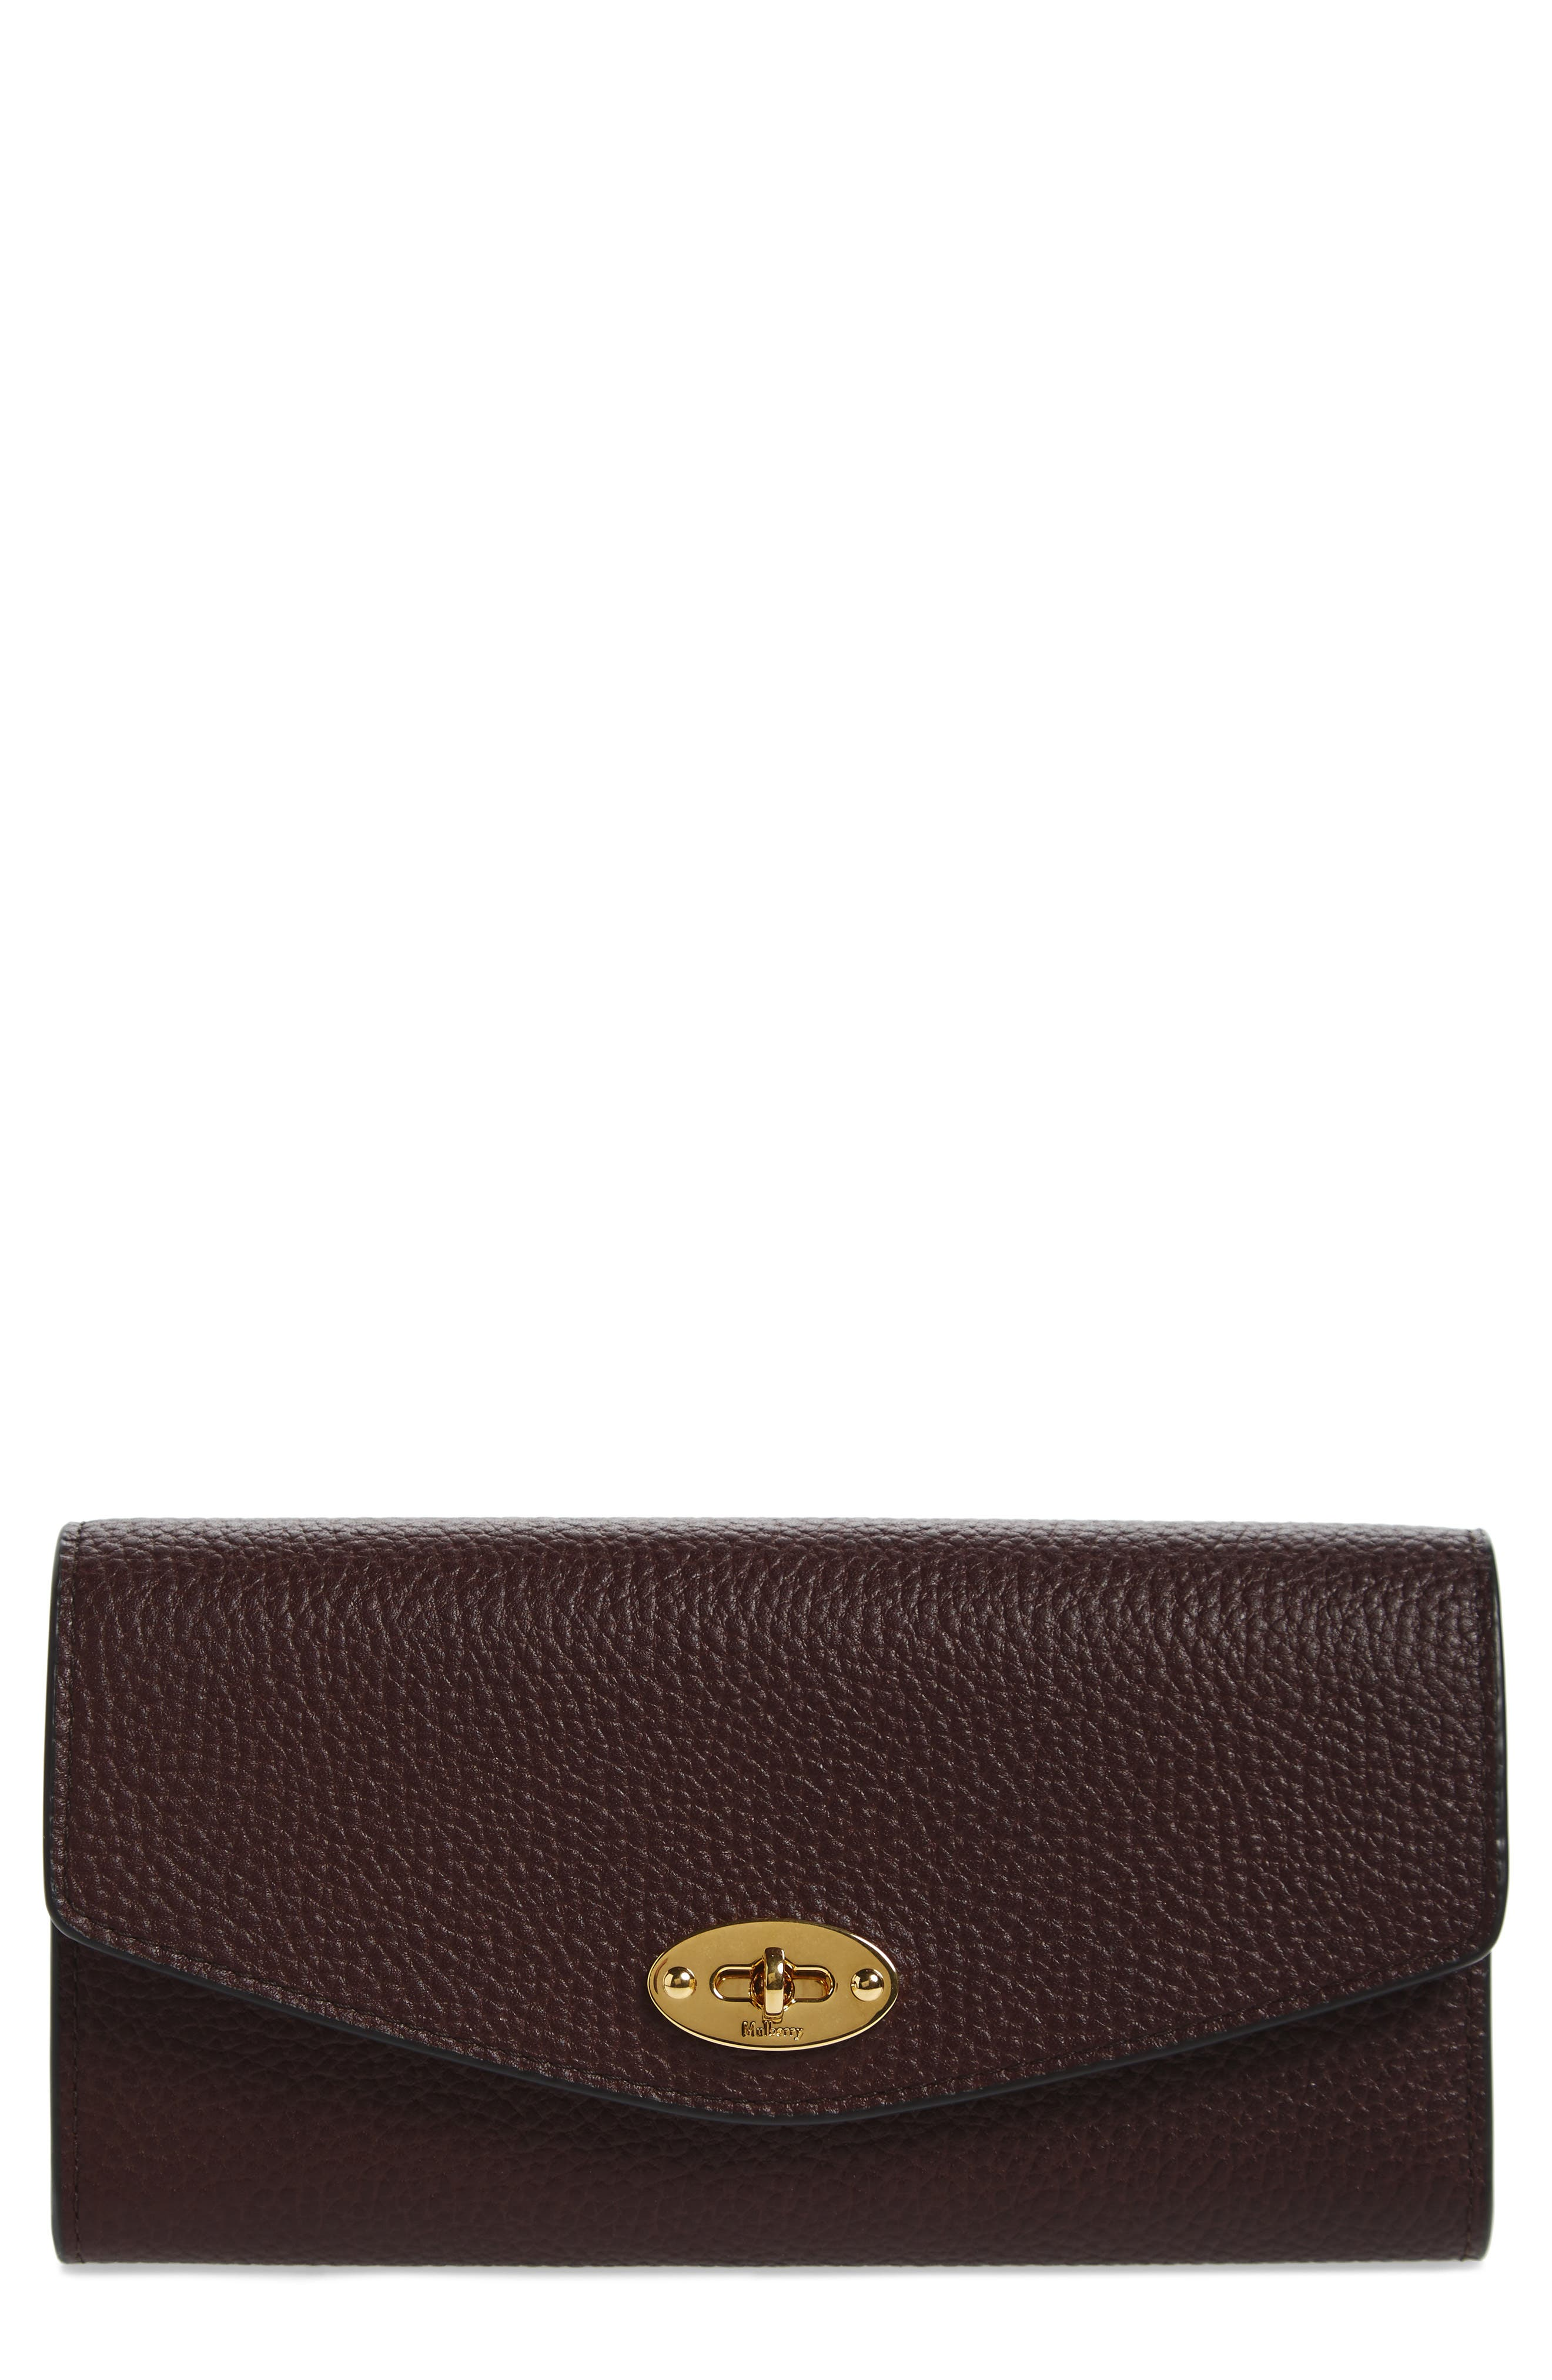 Darley Continental Calfskin Leather Wallet,                         Main,                         color, Oxblood